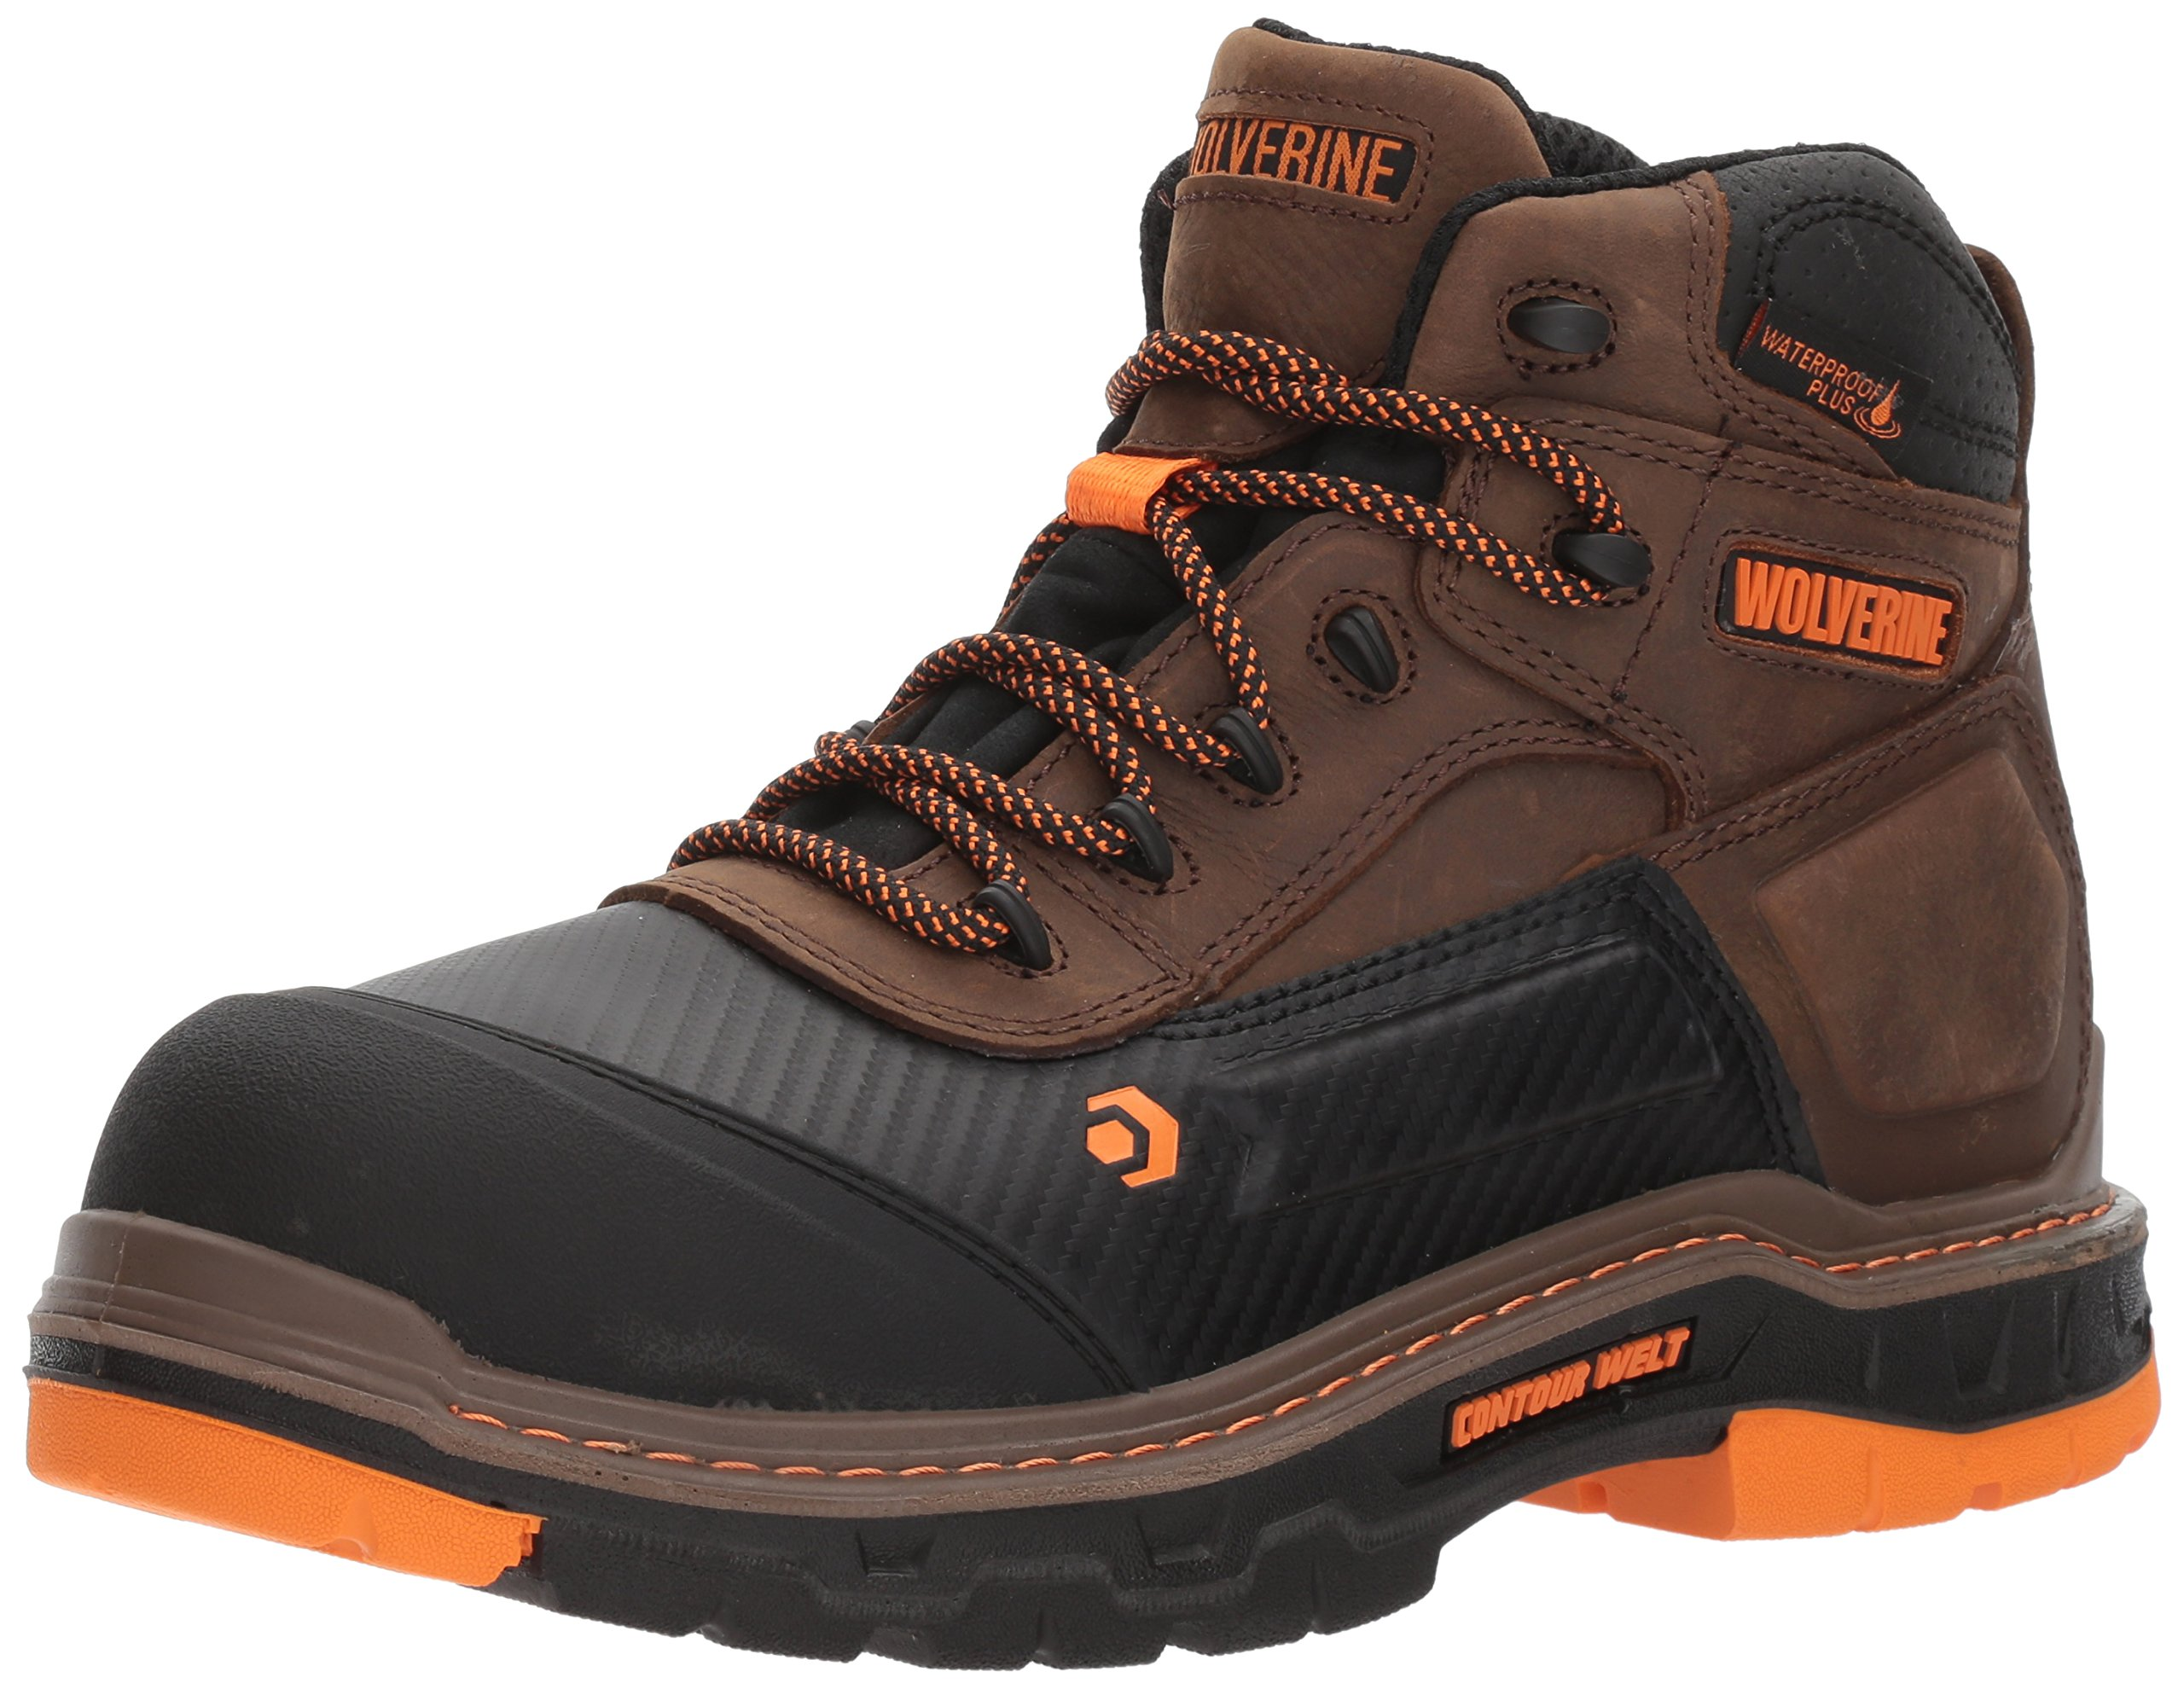 Wolverine Men's Overpass 6'' Composite Toe Waterproof Work Boot, Summer Brown, 7 M US by Wolverine